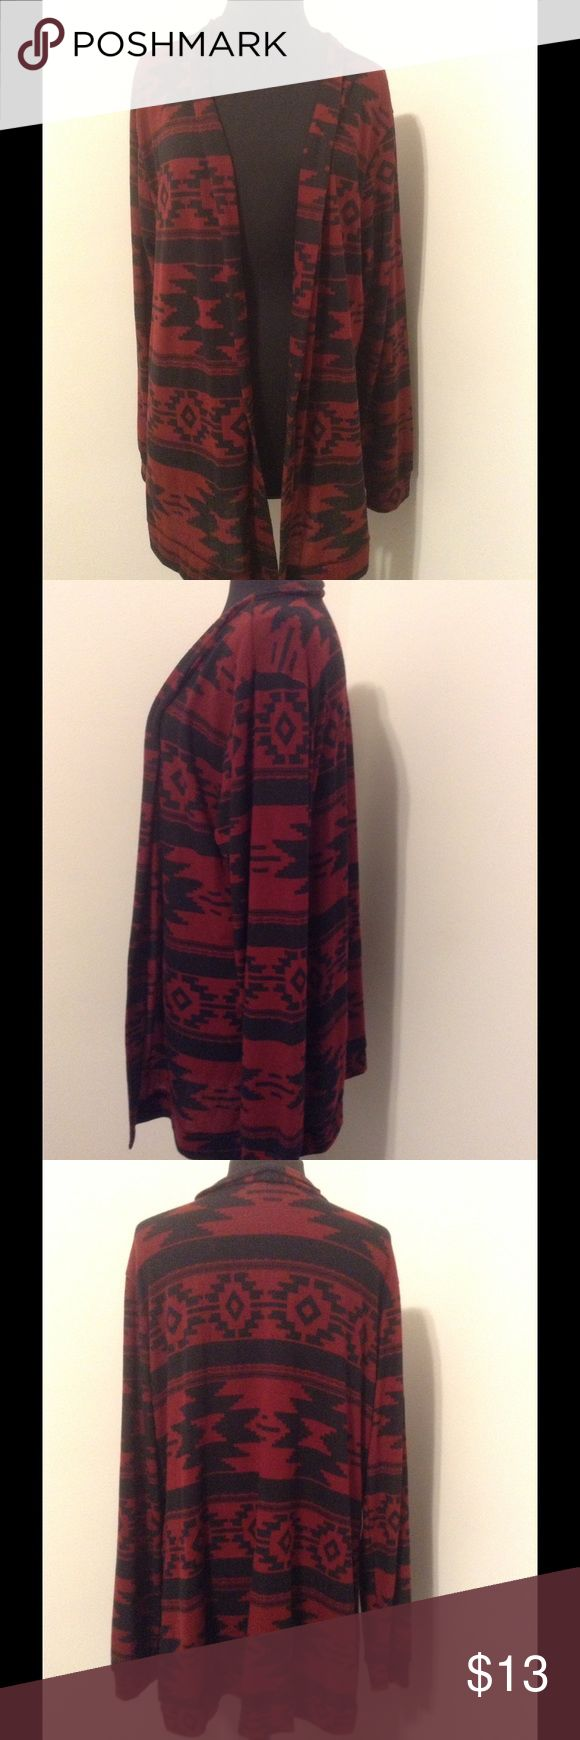 Womens Plus Bobbie Brooks Red Black Duster 3X Bobbie Brooks open duster/sweater/cardigan. Very nice. Has a southwestern pattern, long. Lightweight.   	•	95% polyester, 5% spandex 	•	Open duster 	•	Long sleeves 	•	red, black  	•	pre-owned and in very nice condition 	•	stretches 	•	machine wash 	•	necklace not included 	•	size 2X Always go by measurements provided rather than tag size. Measurements are around and taken while item is lying flat. 	•	Chest: open 	•	Waist:   open 	•	Hemline: open…